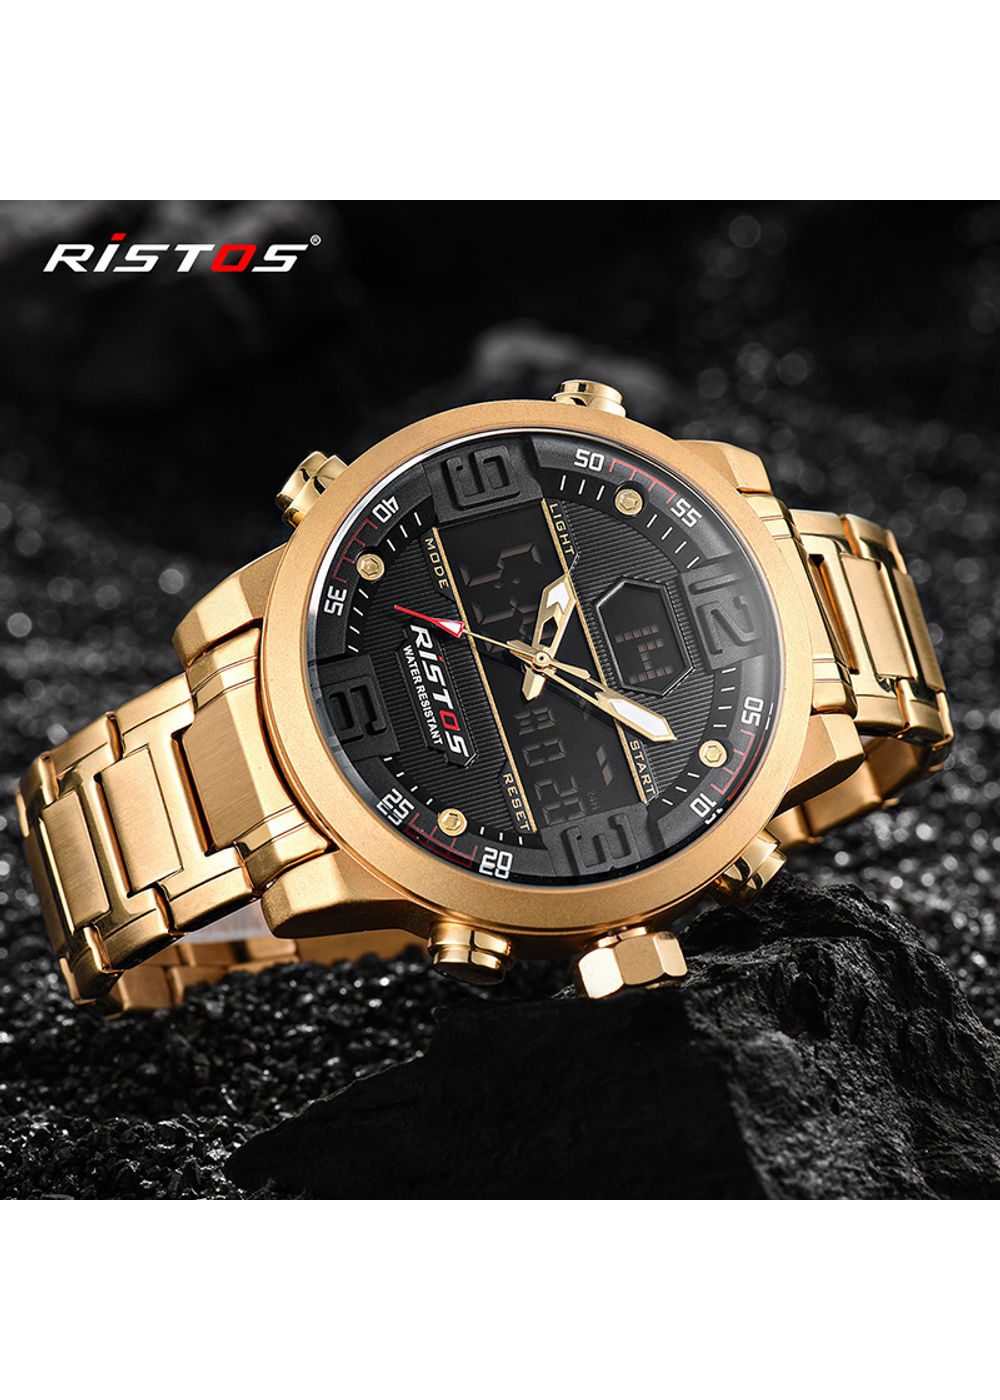 Ristos 9338 Gold Analog Digital Chronograph Watch For Men